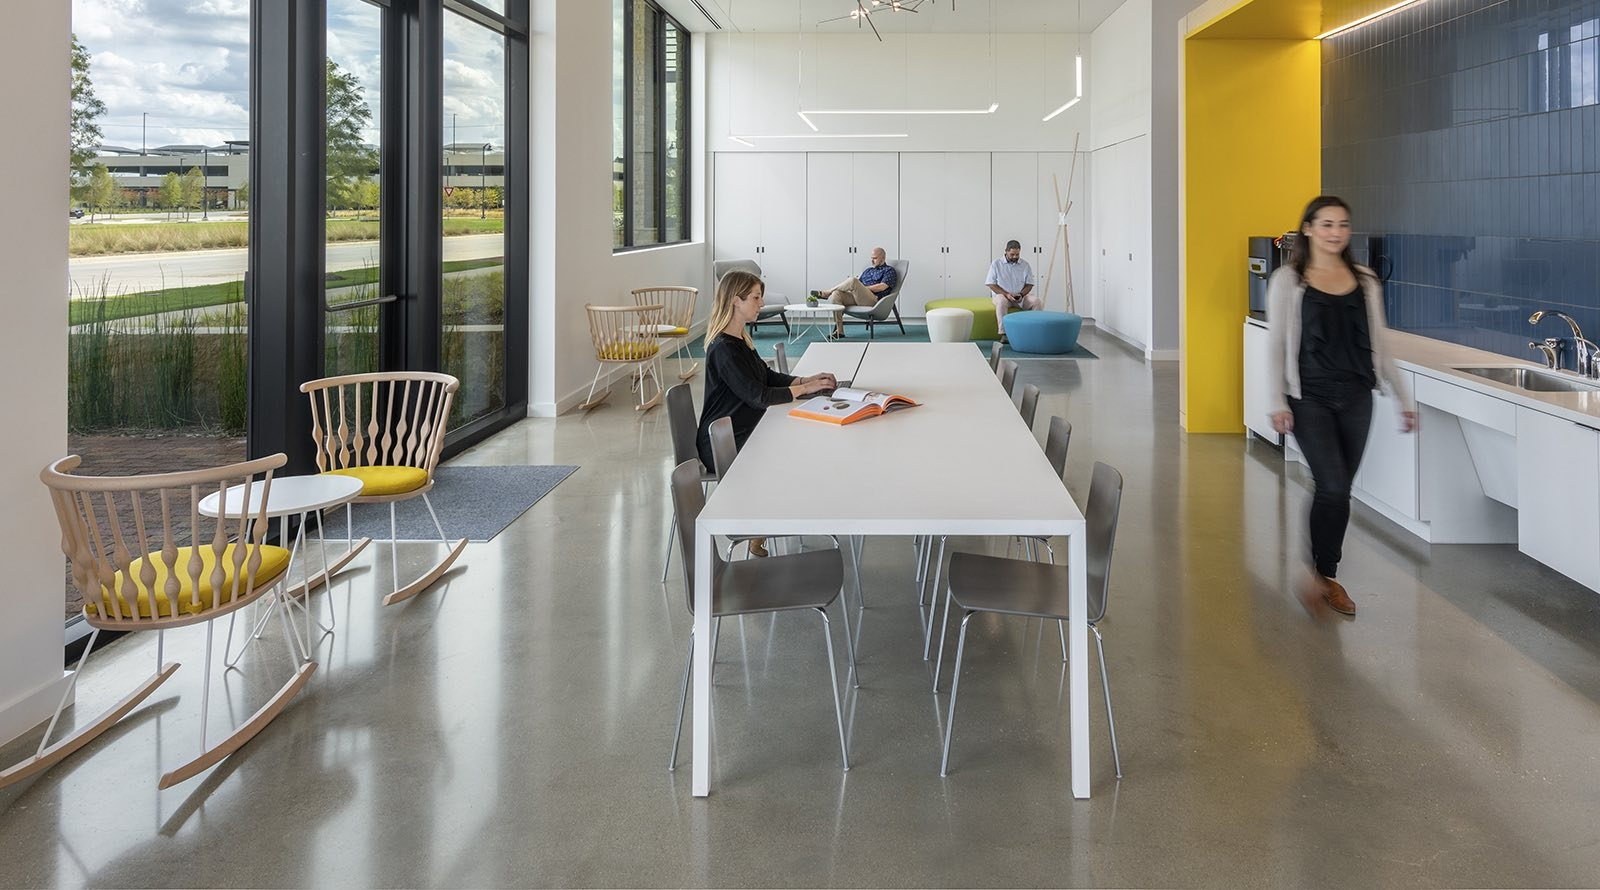 Spacious breakroom with kitchennete, long talbe, rocking chairs, poufs and lounge seating by glass windows